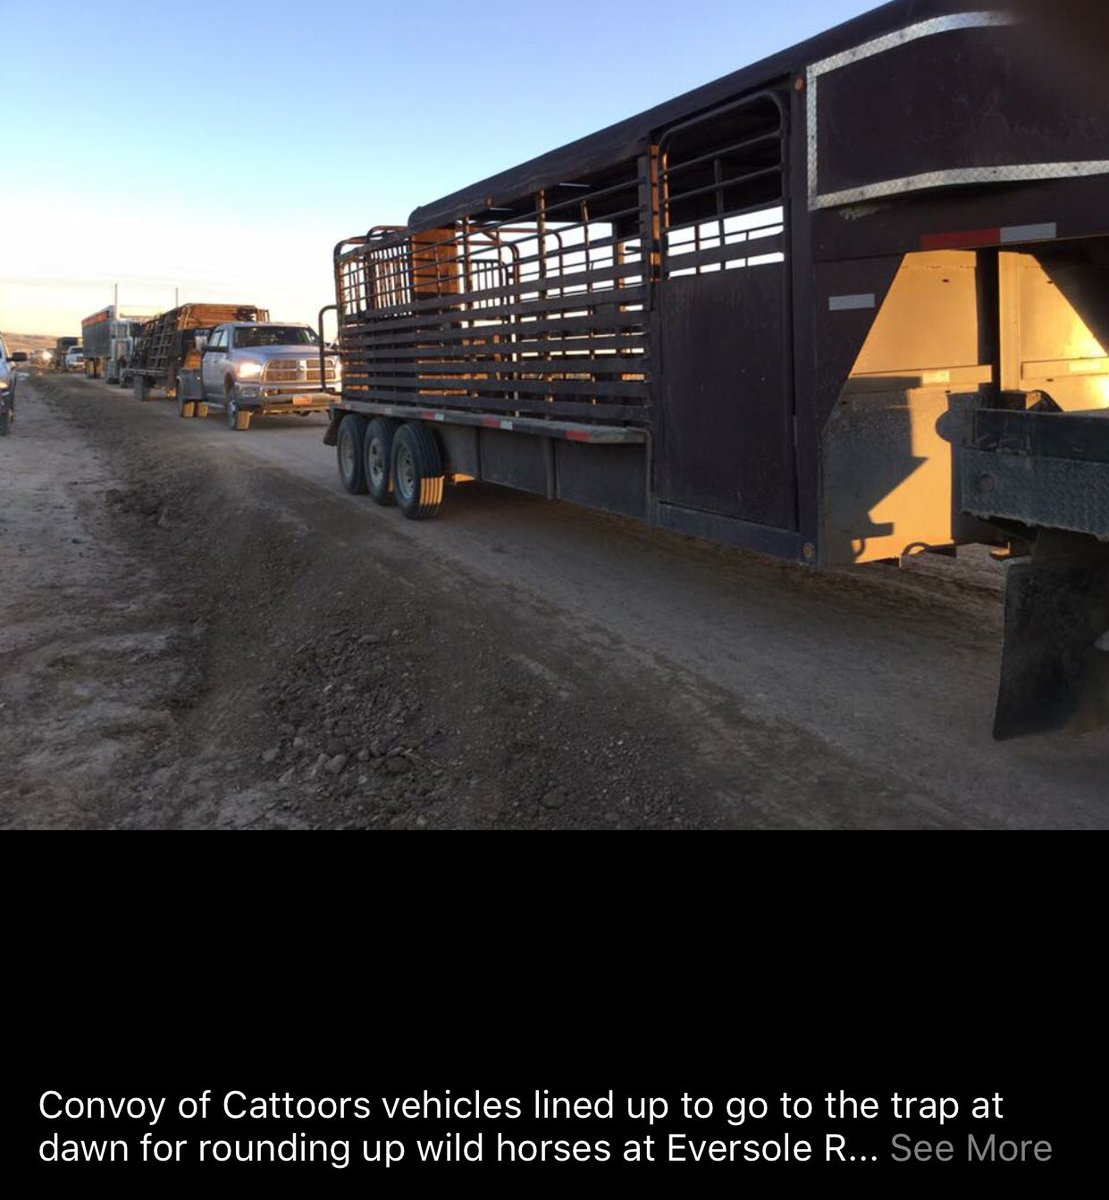 Chasing wildhorses with helicopters, penning them, and transporting them to holding facilities is...BIG BUSINESS, compliments of the American taxpayer. Here are the cowboys, all hot and bothered no doubt, as they prepare to abuse our protected wildhorses. This is NOT normal. <br>http://pic.twitter.com/axXXvcl2I8